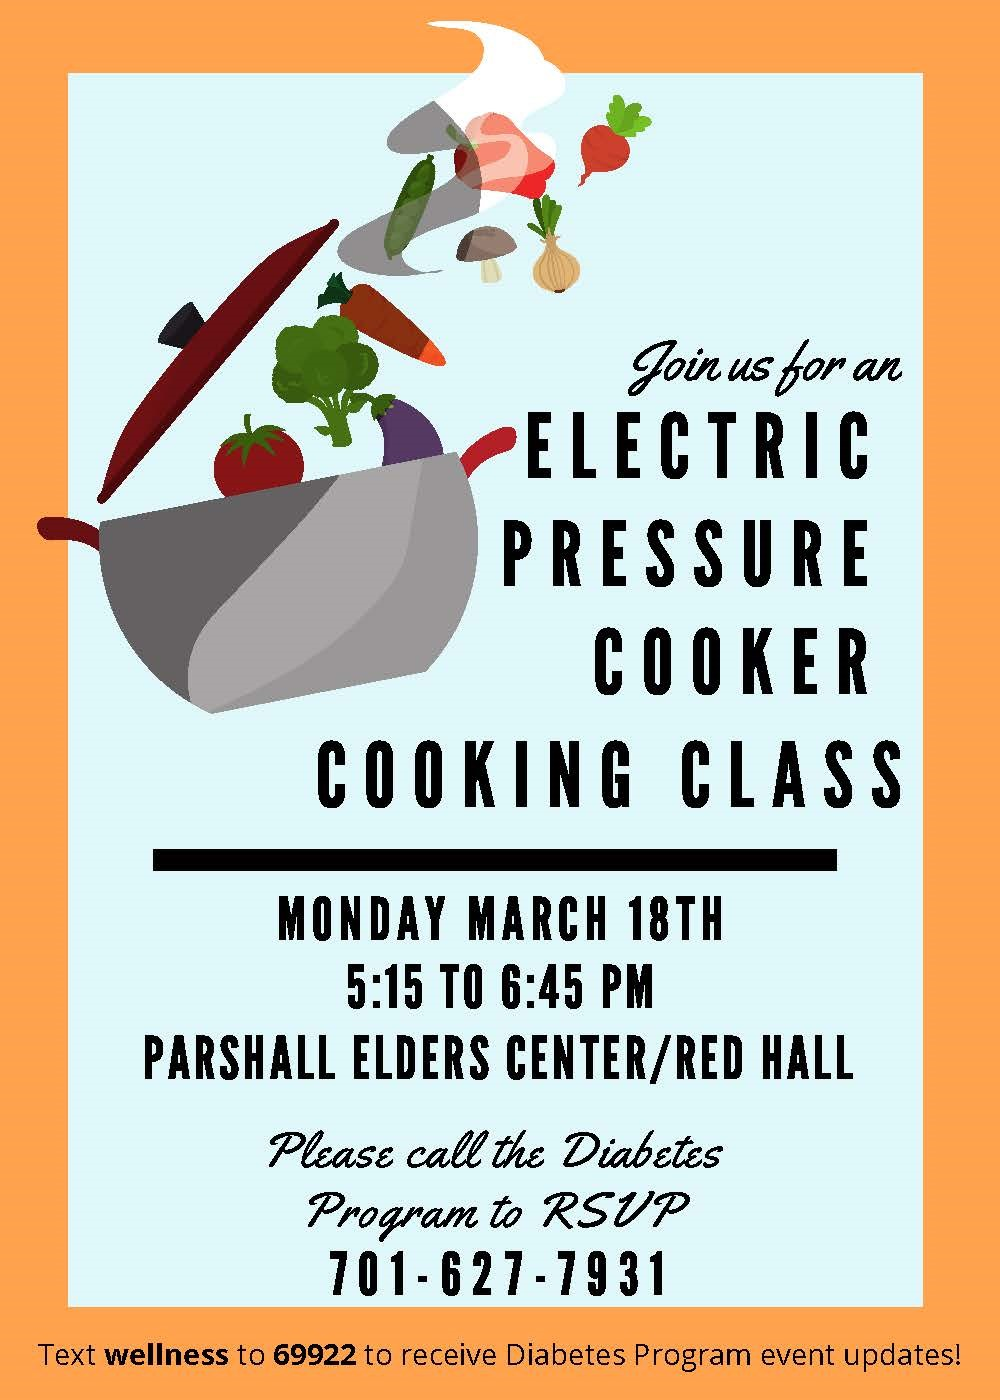 Diabetes Program Electric Pressure Cooker Class Parshall.jpg